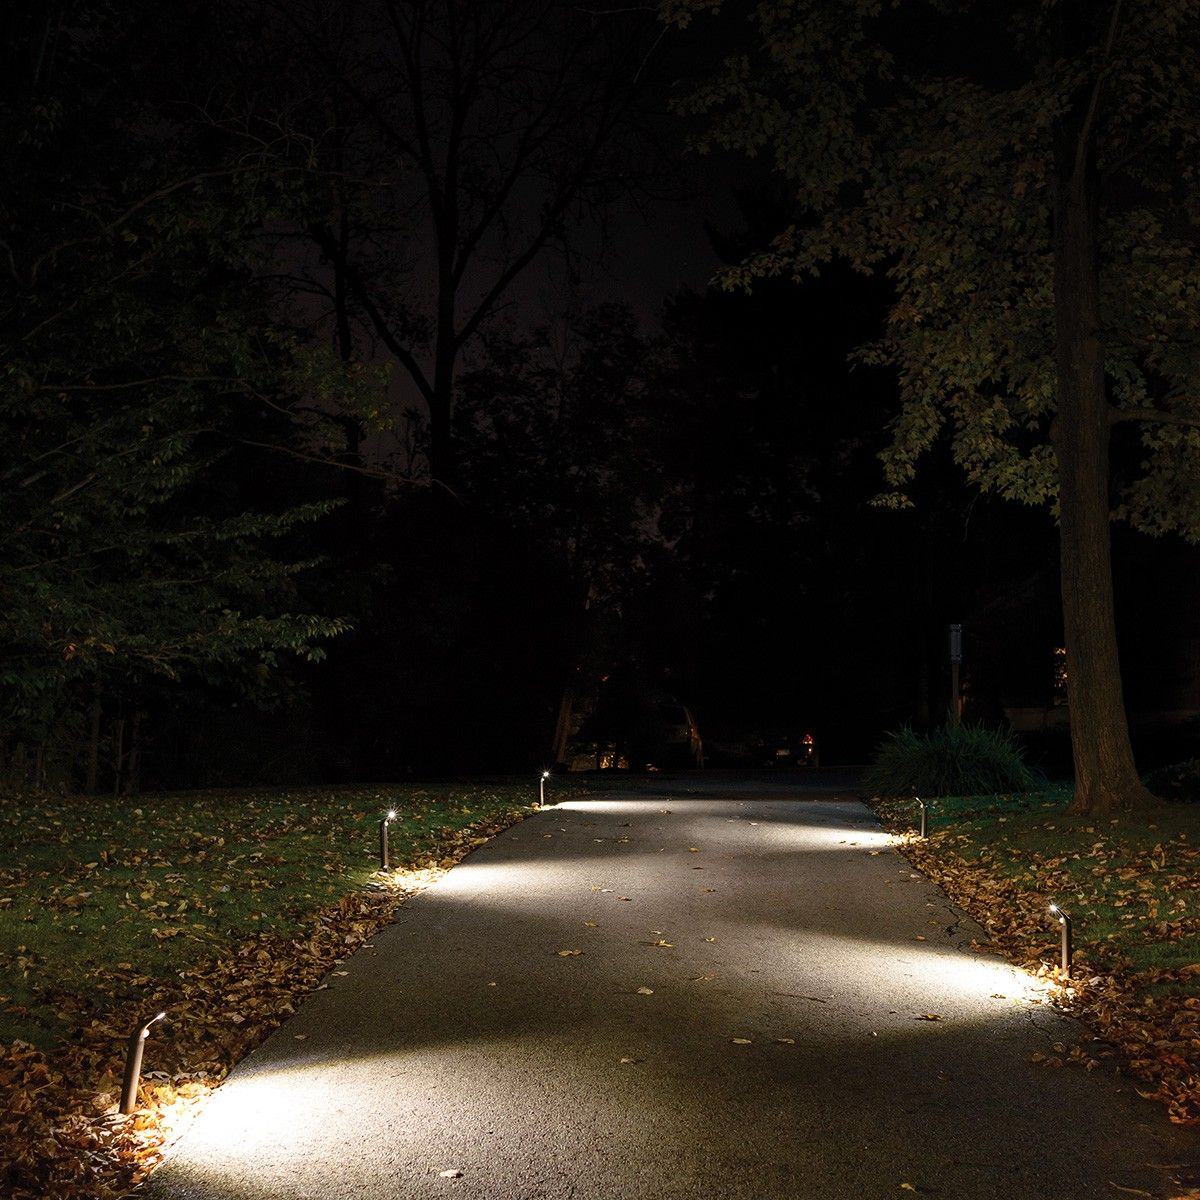 Mr Beams Ultrabright Outdoor Led Path Lights Mb596 Set Of 6 Dark Wiring Landscape Quickly And Easily Illuminate Walkways Decks Driveways More With These Ultra Bright Battery Powered Motion Sensing No Wires